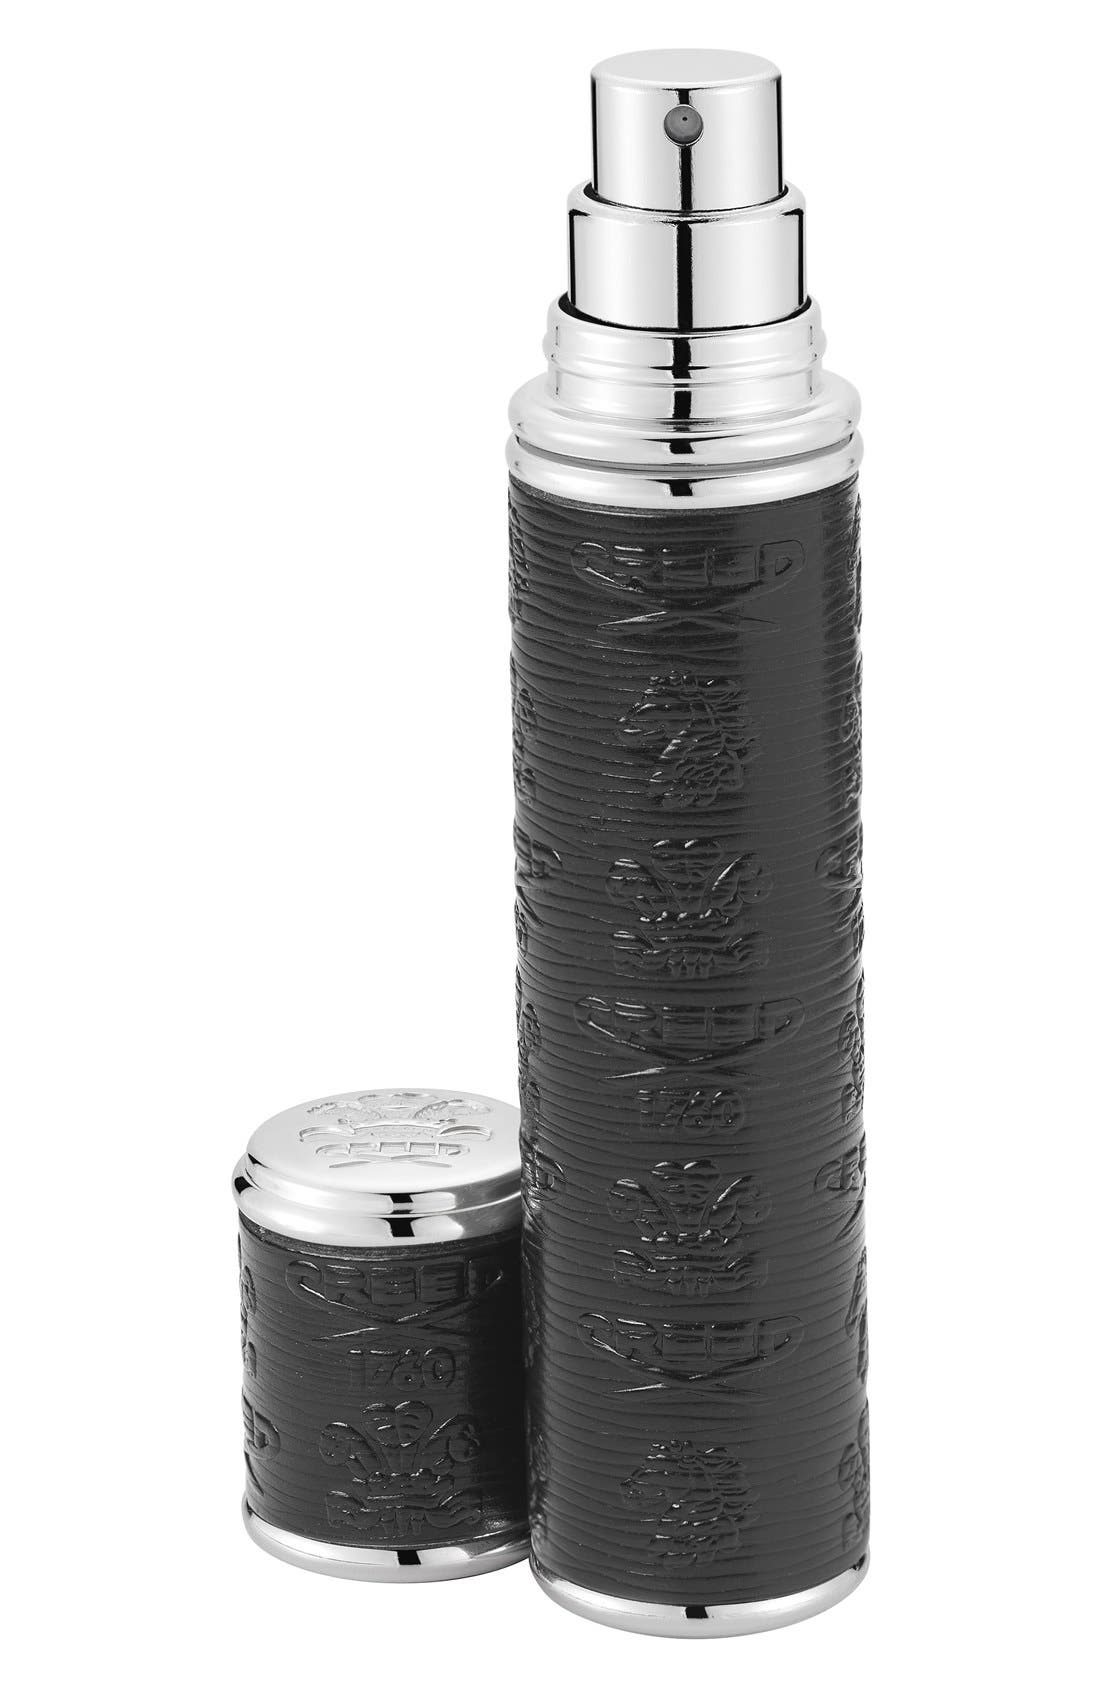 Creed Black Leather With Silver Trim Pocket Atomizer